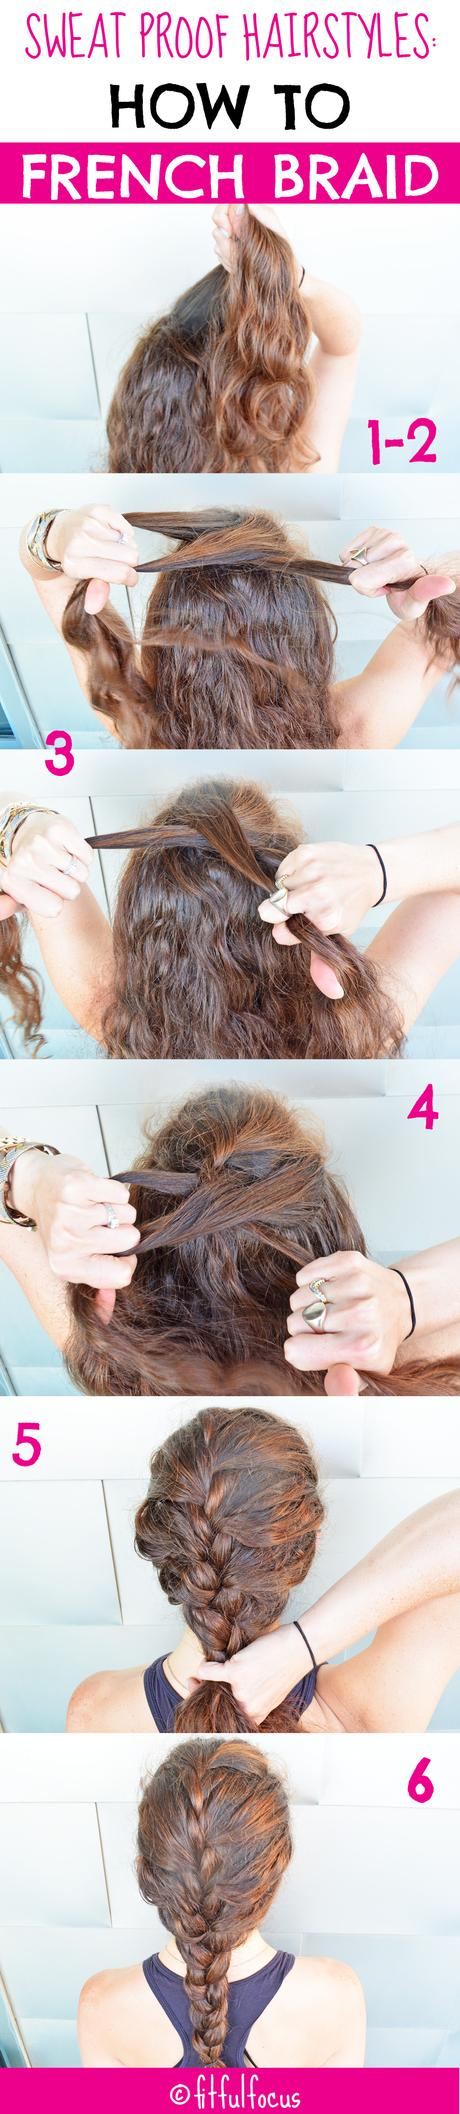 Sweat Proof Hairstyles: How To French Braid